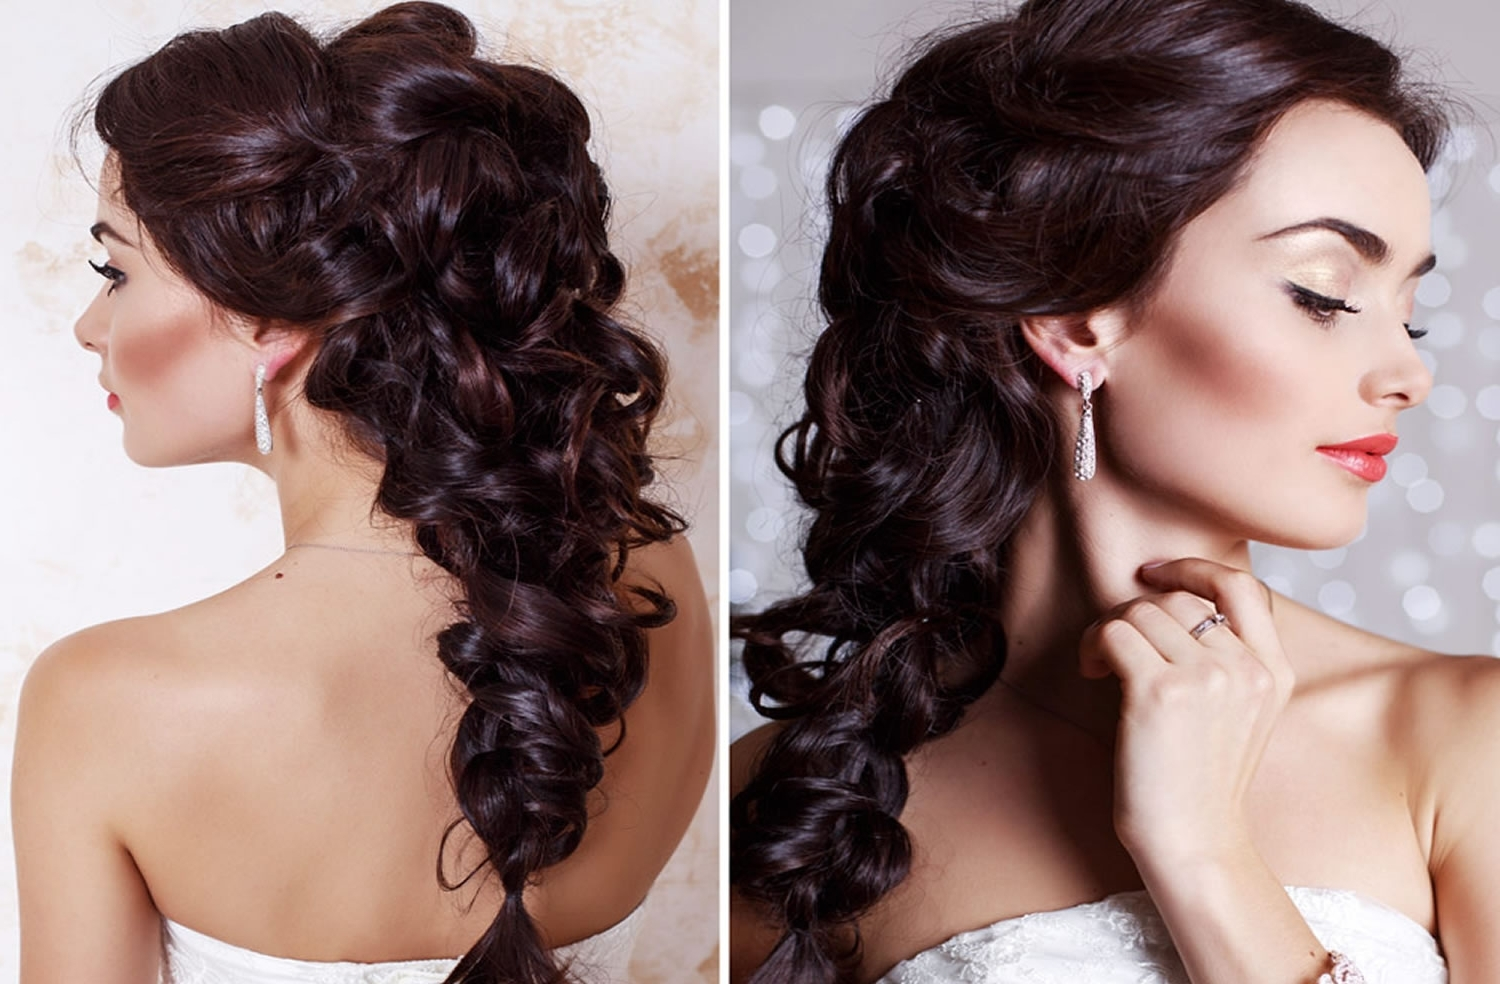 Trendy Wedding Hairstyles For Square Face Inside Very Stylish Wedding Hairstyles For Long Hair 2018 2019 – Hairstyles (View 12 of 15)